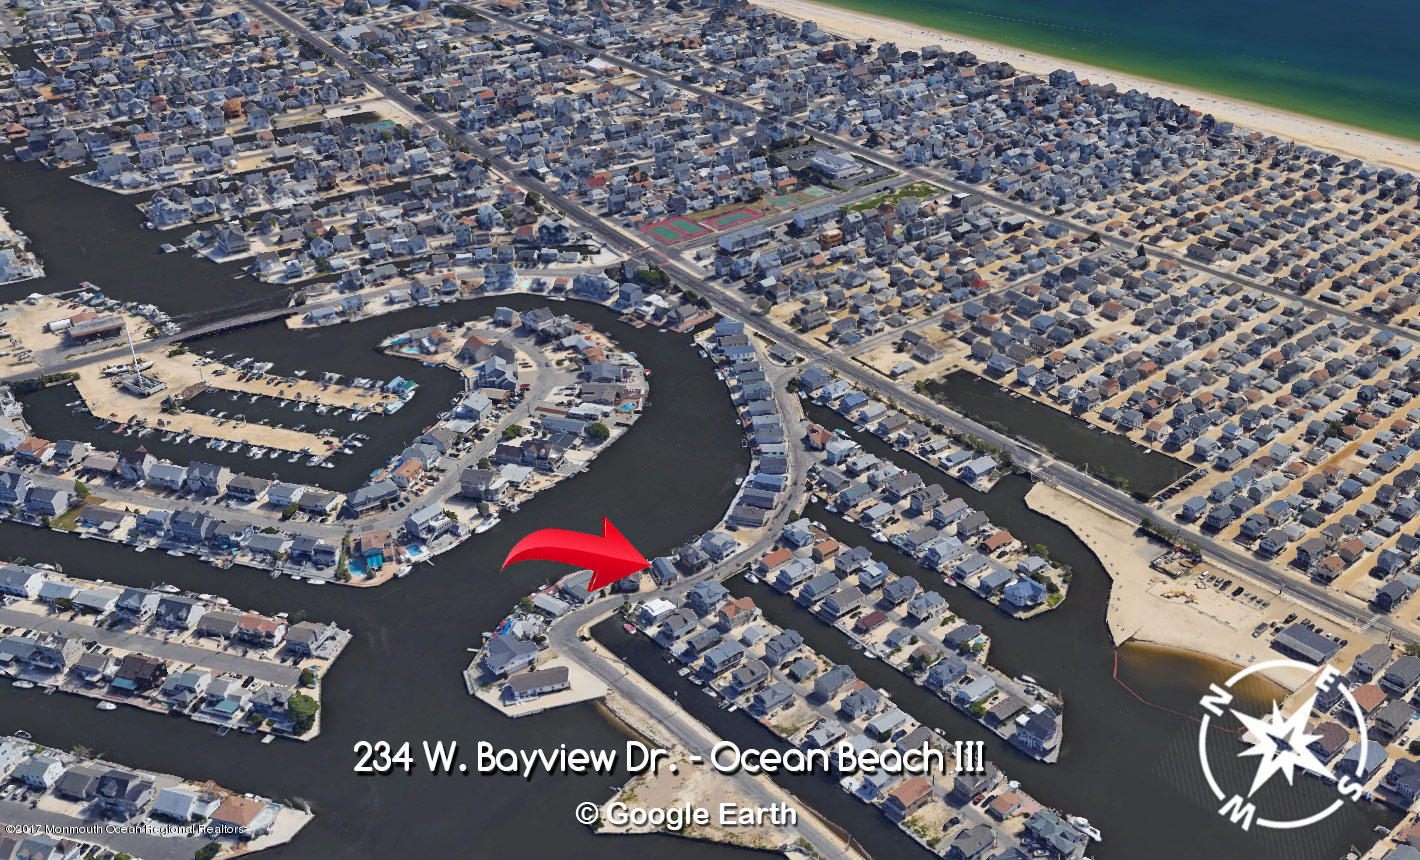 234 W Bayview Drive - Picture 12